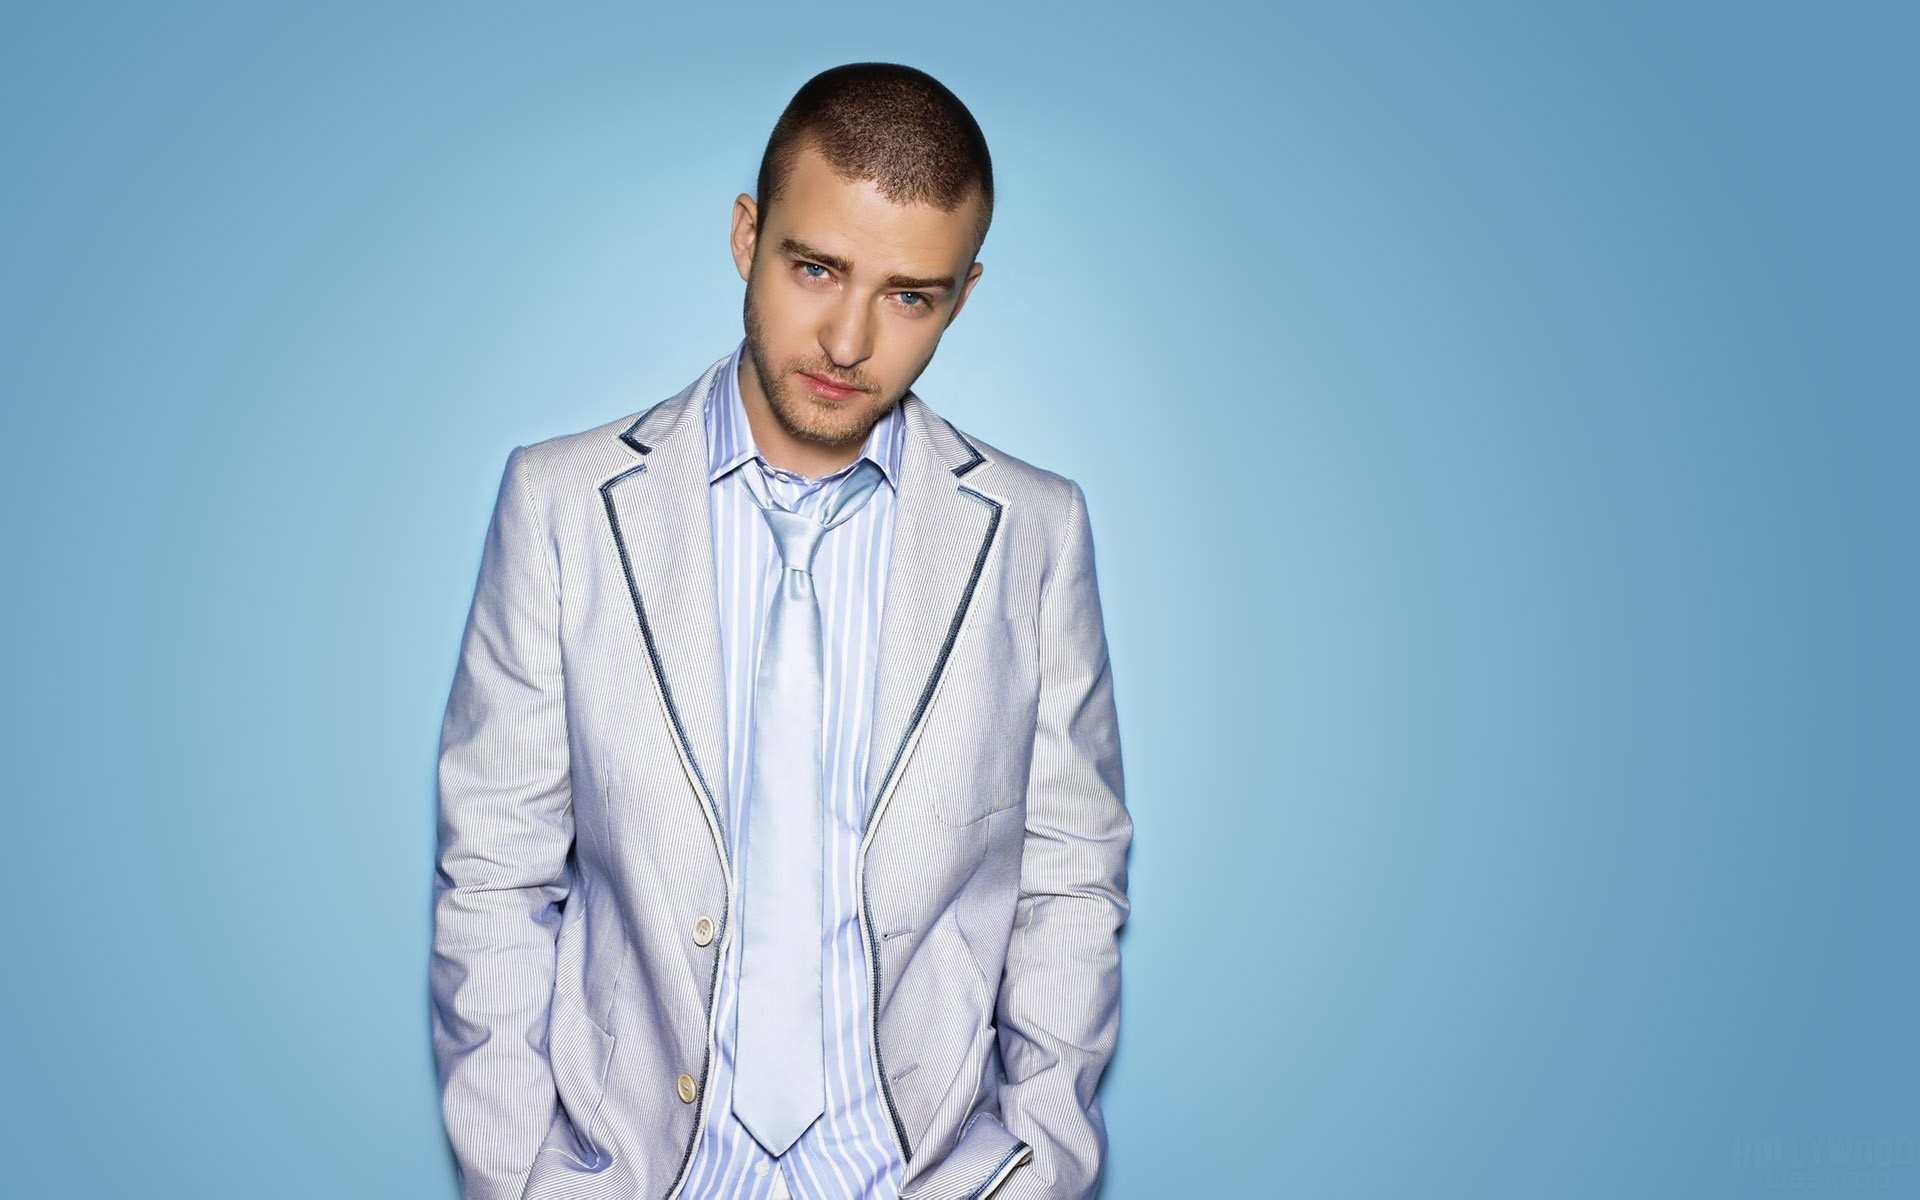 Justin Timberlake Wallpaper 40196